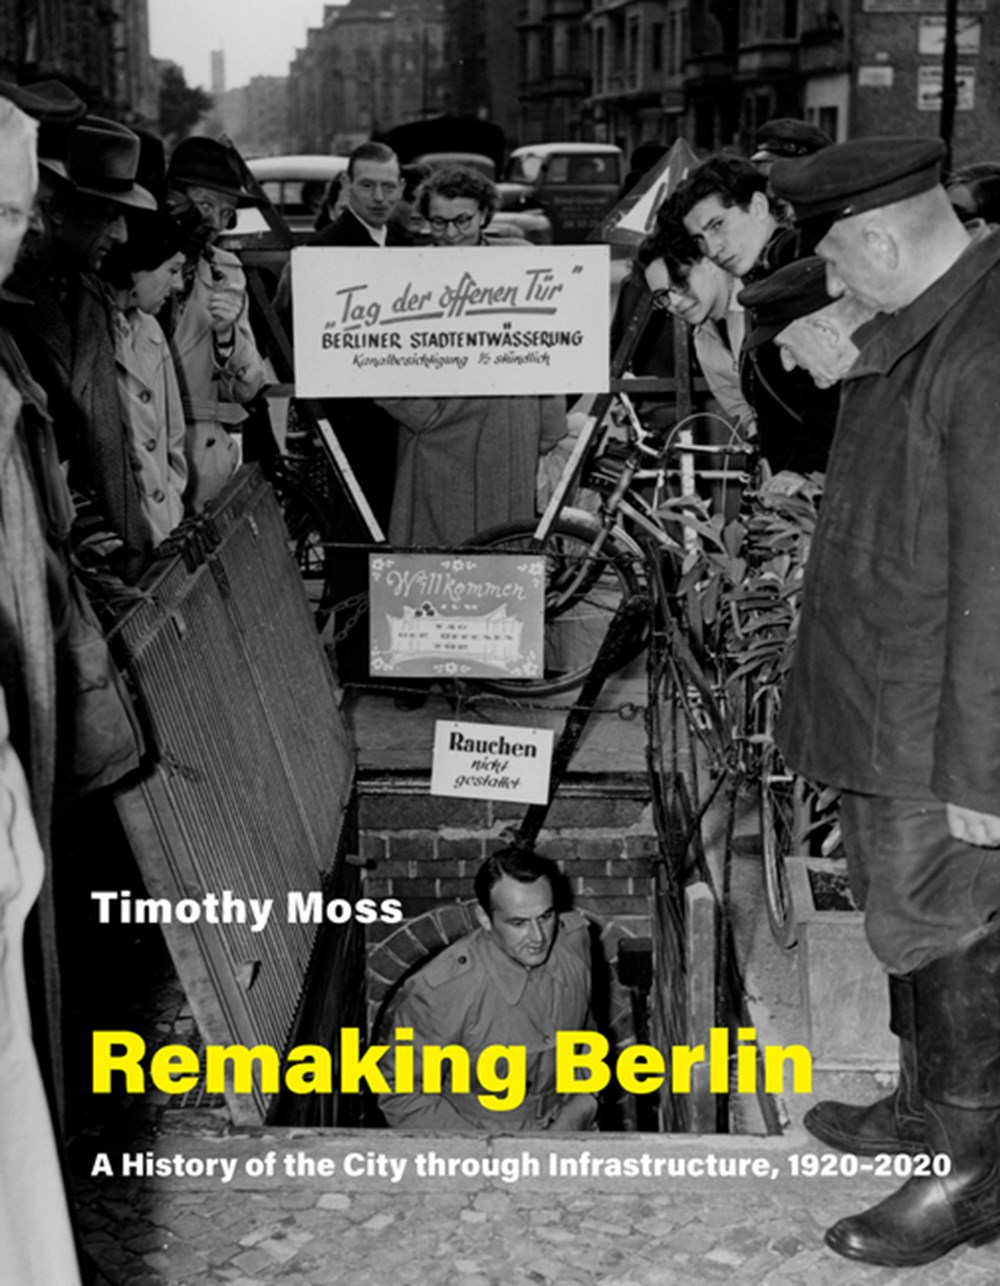 Remaking Berlin A History of the City Through Infrastructure, 1920-2020